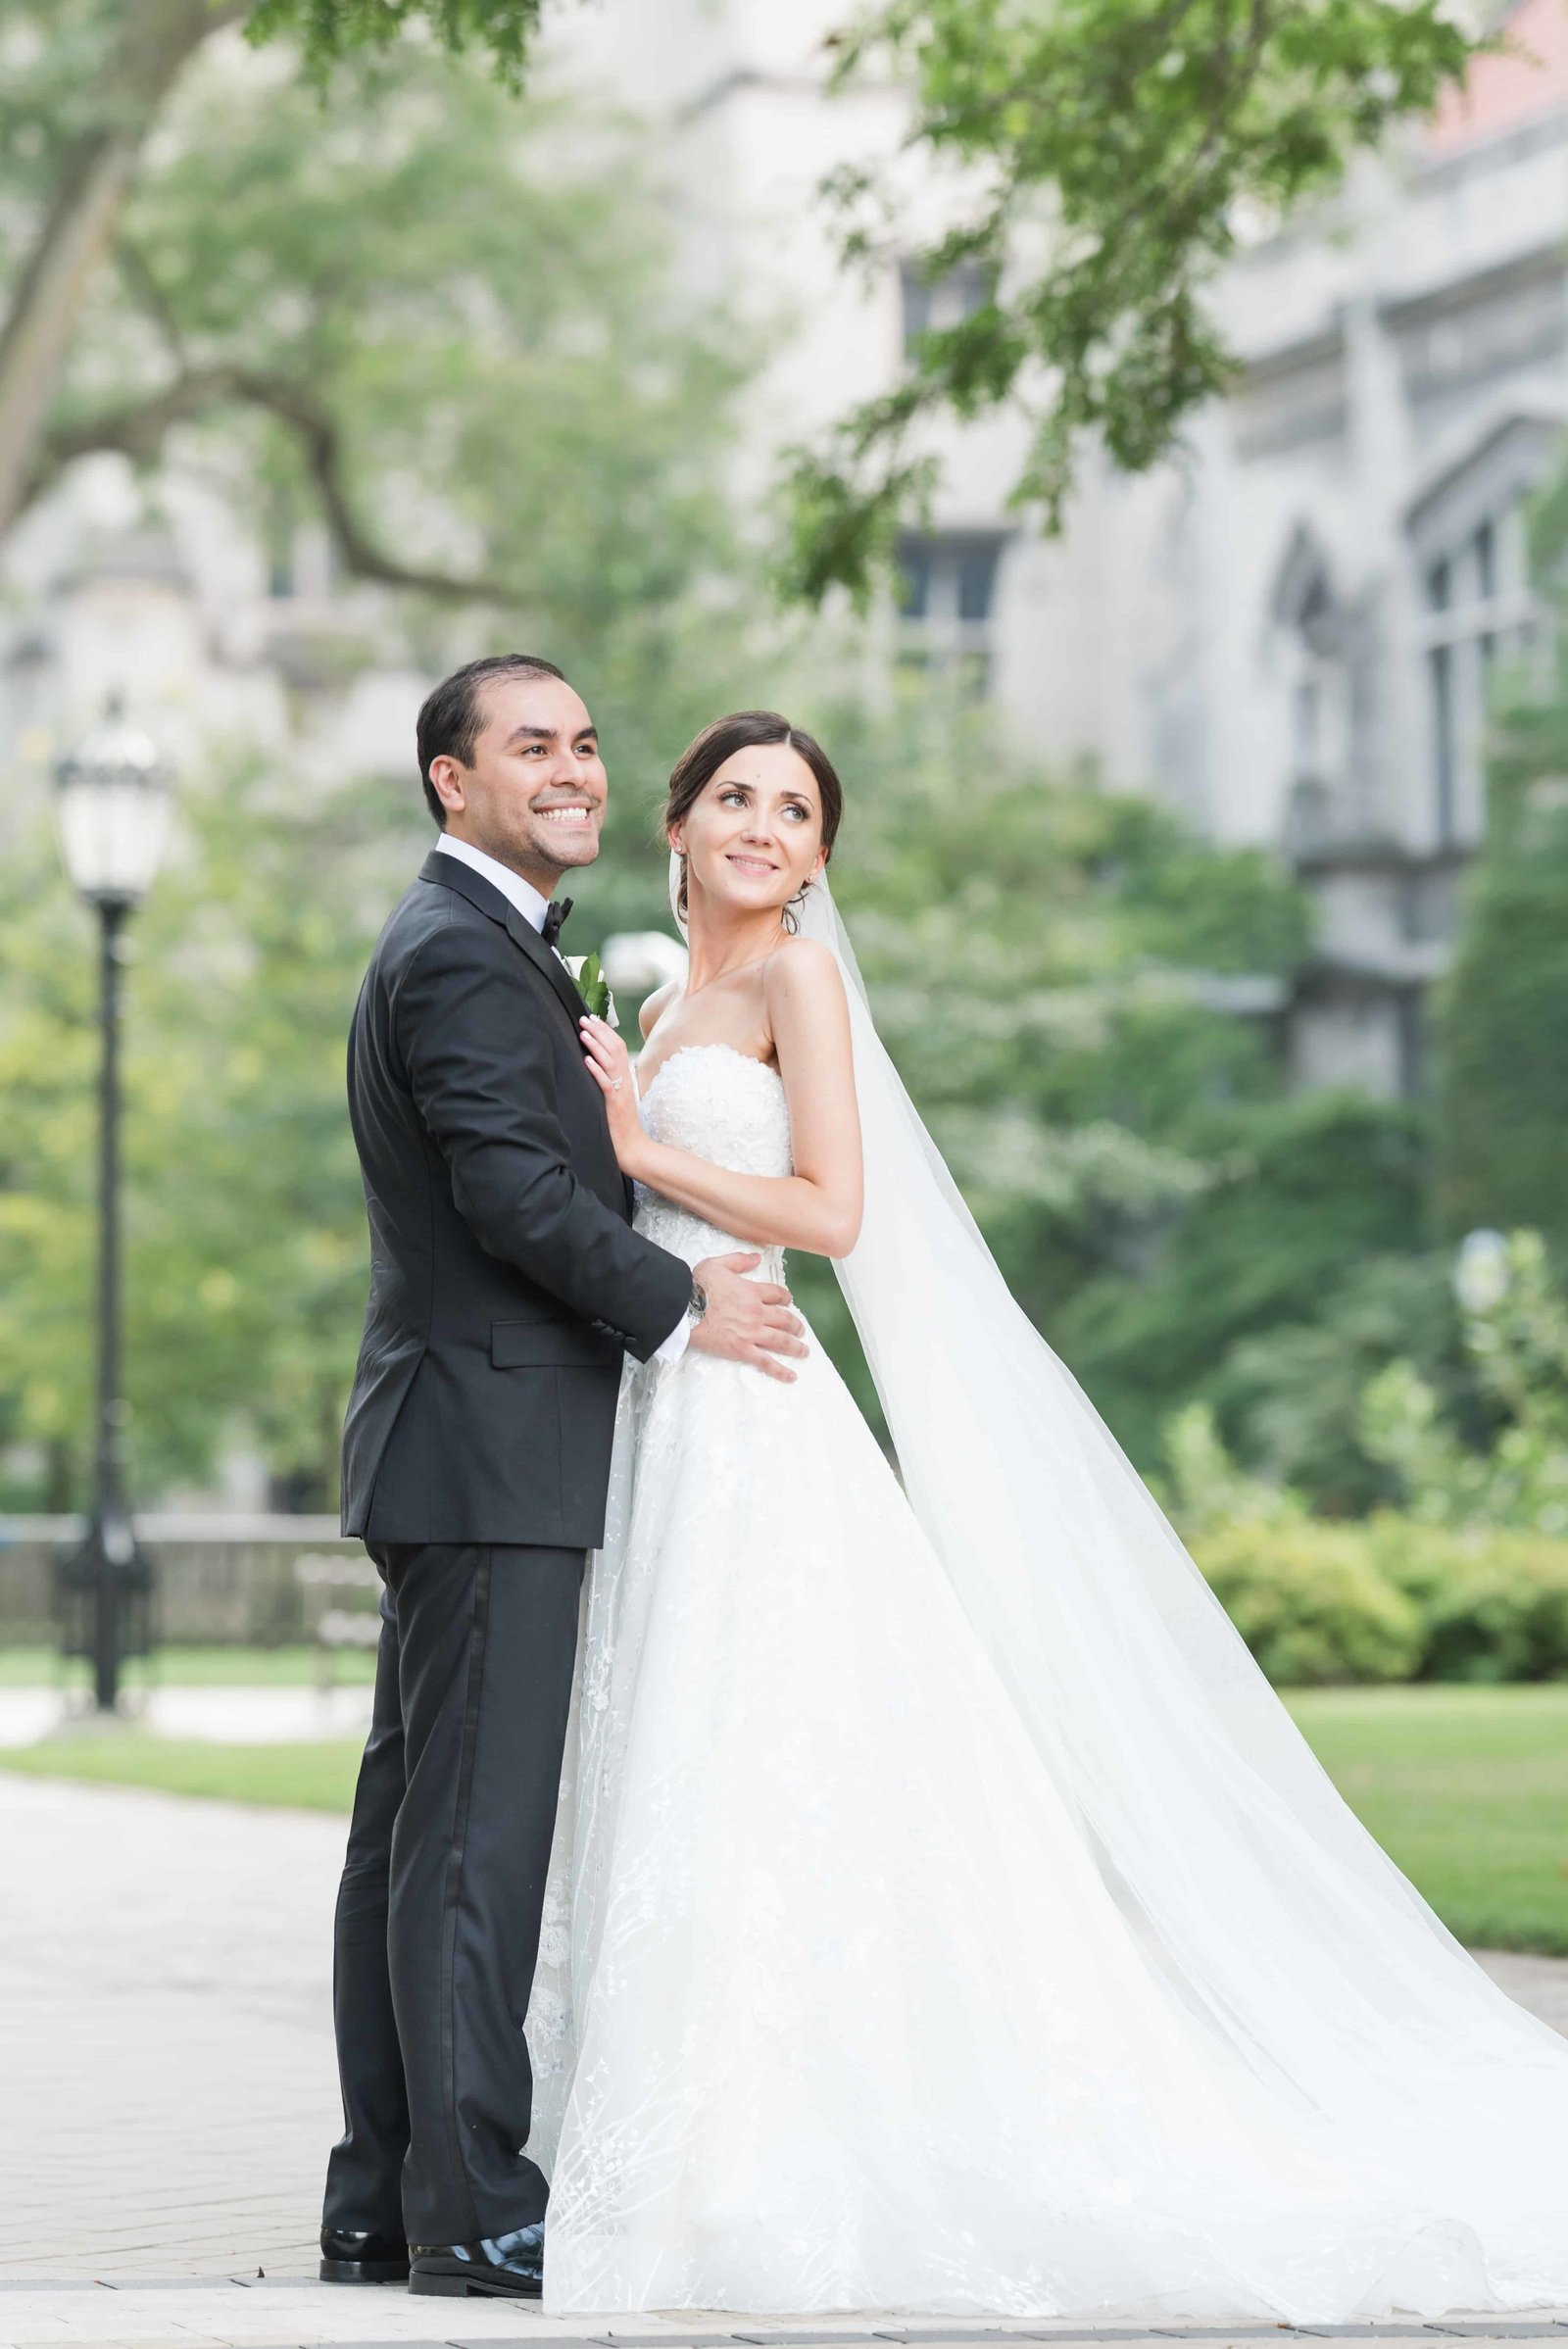 Bridal portrait at the University of Chicago campus